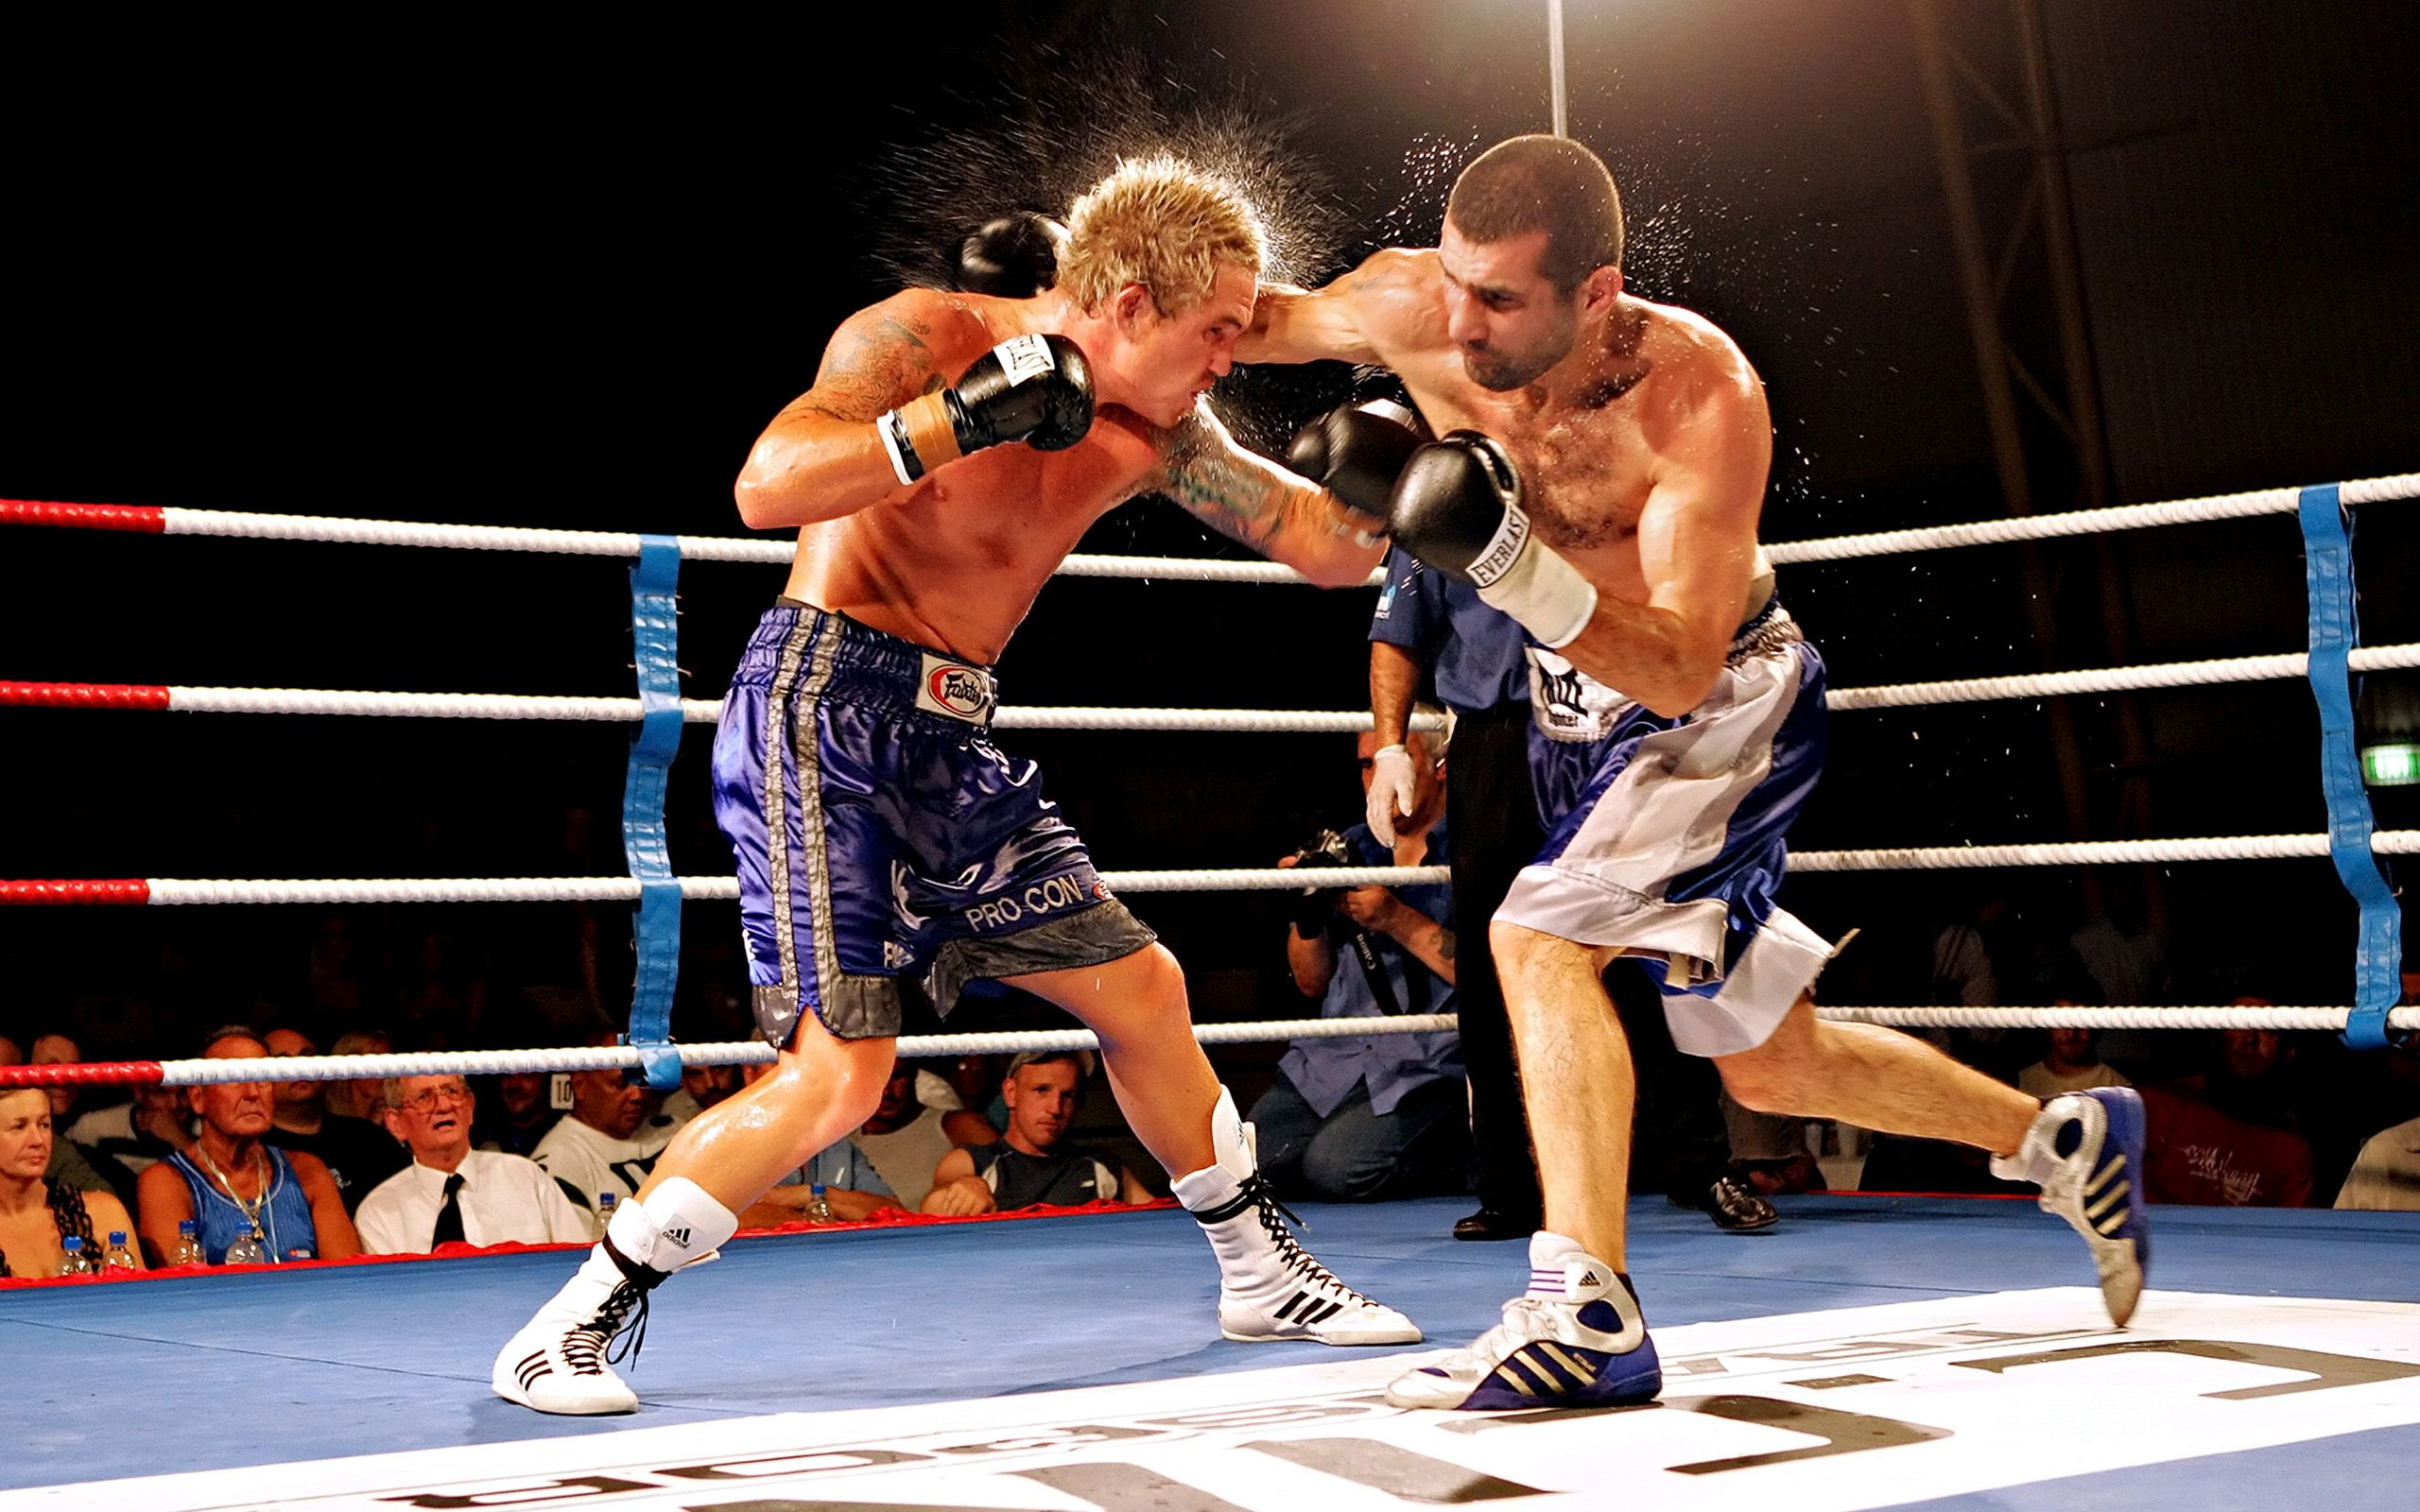 Boxing Wallpapers Hd Desktop Backgronds High Definition Sports Photography Tips Sports Photography Sport Photography